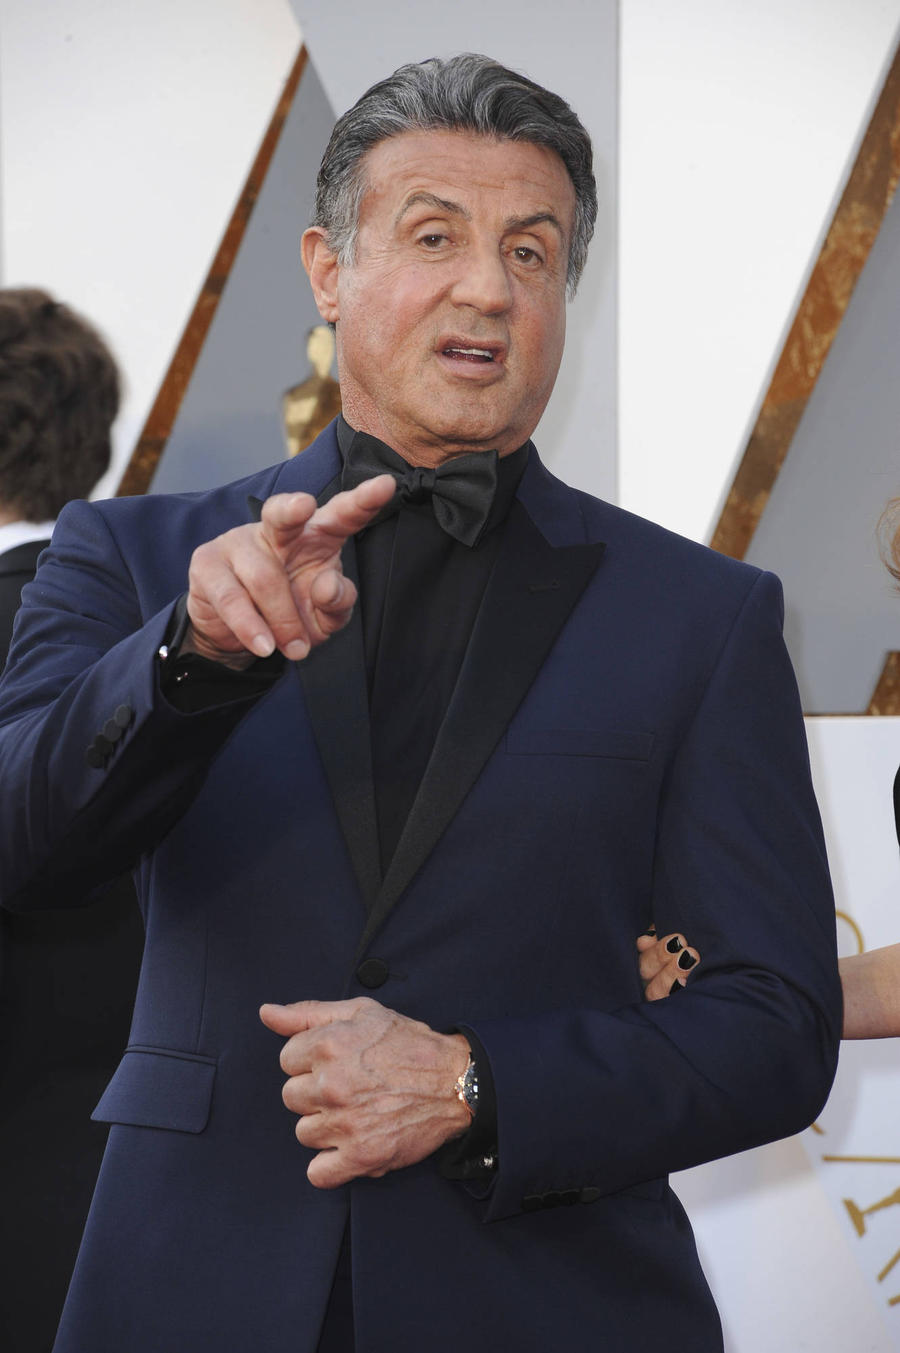 Sylvester Stallone's Brother Furious Over Oscars Snub